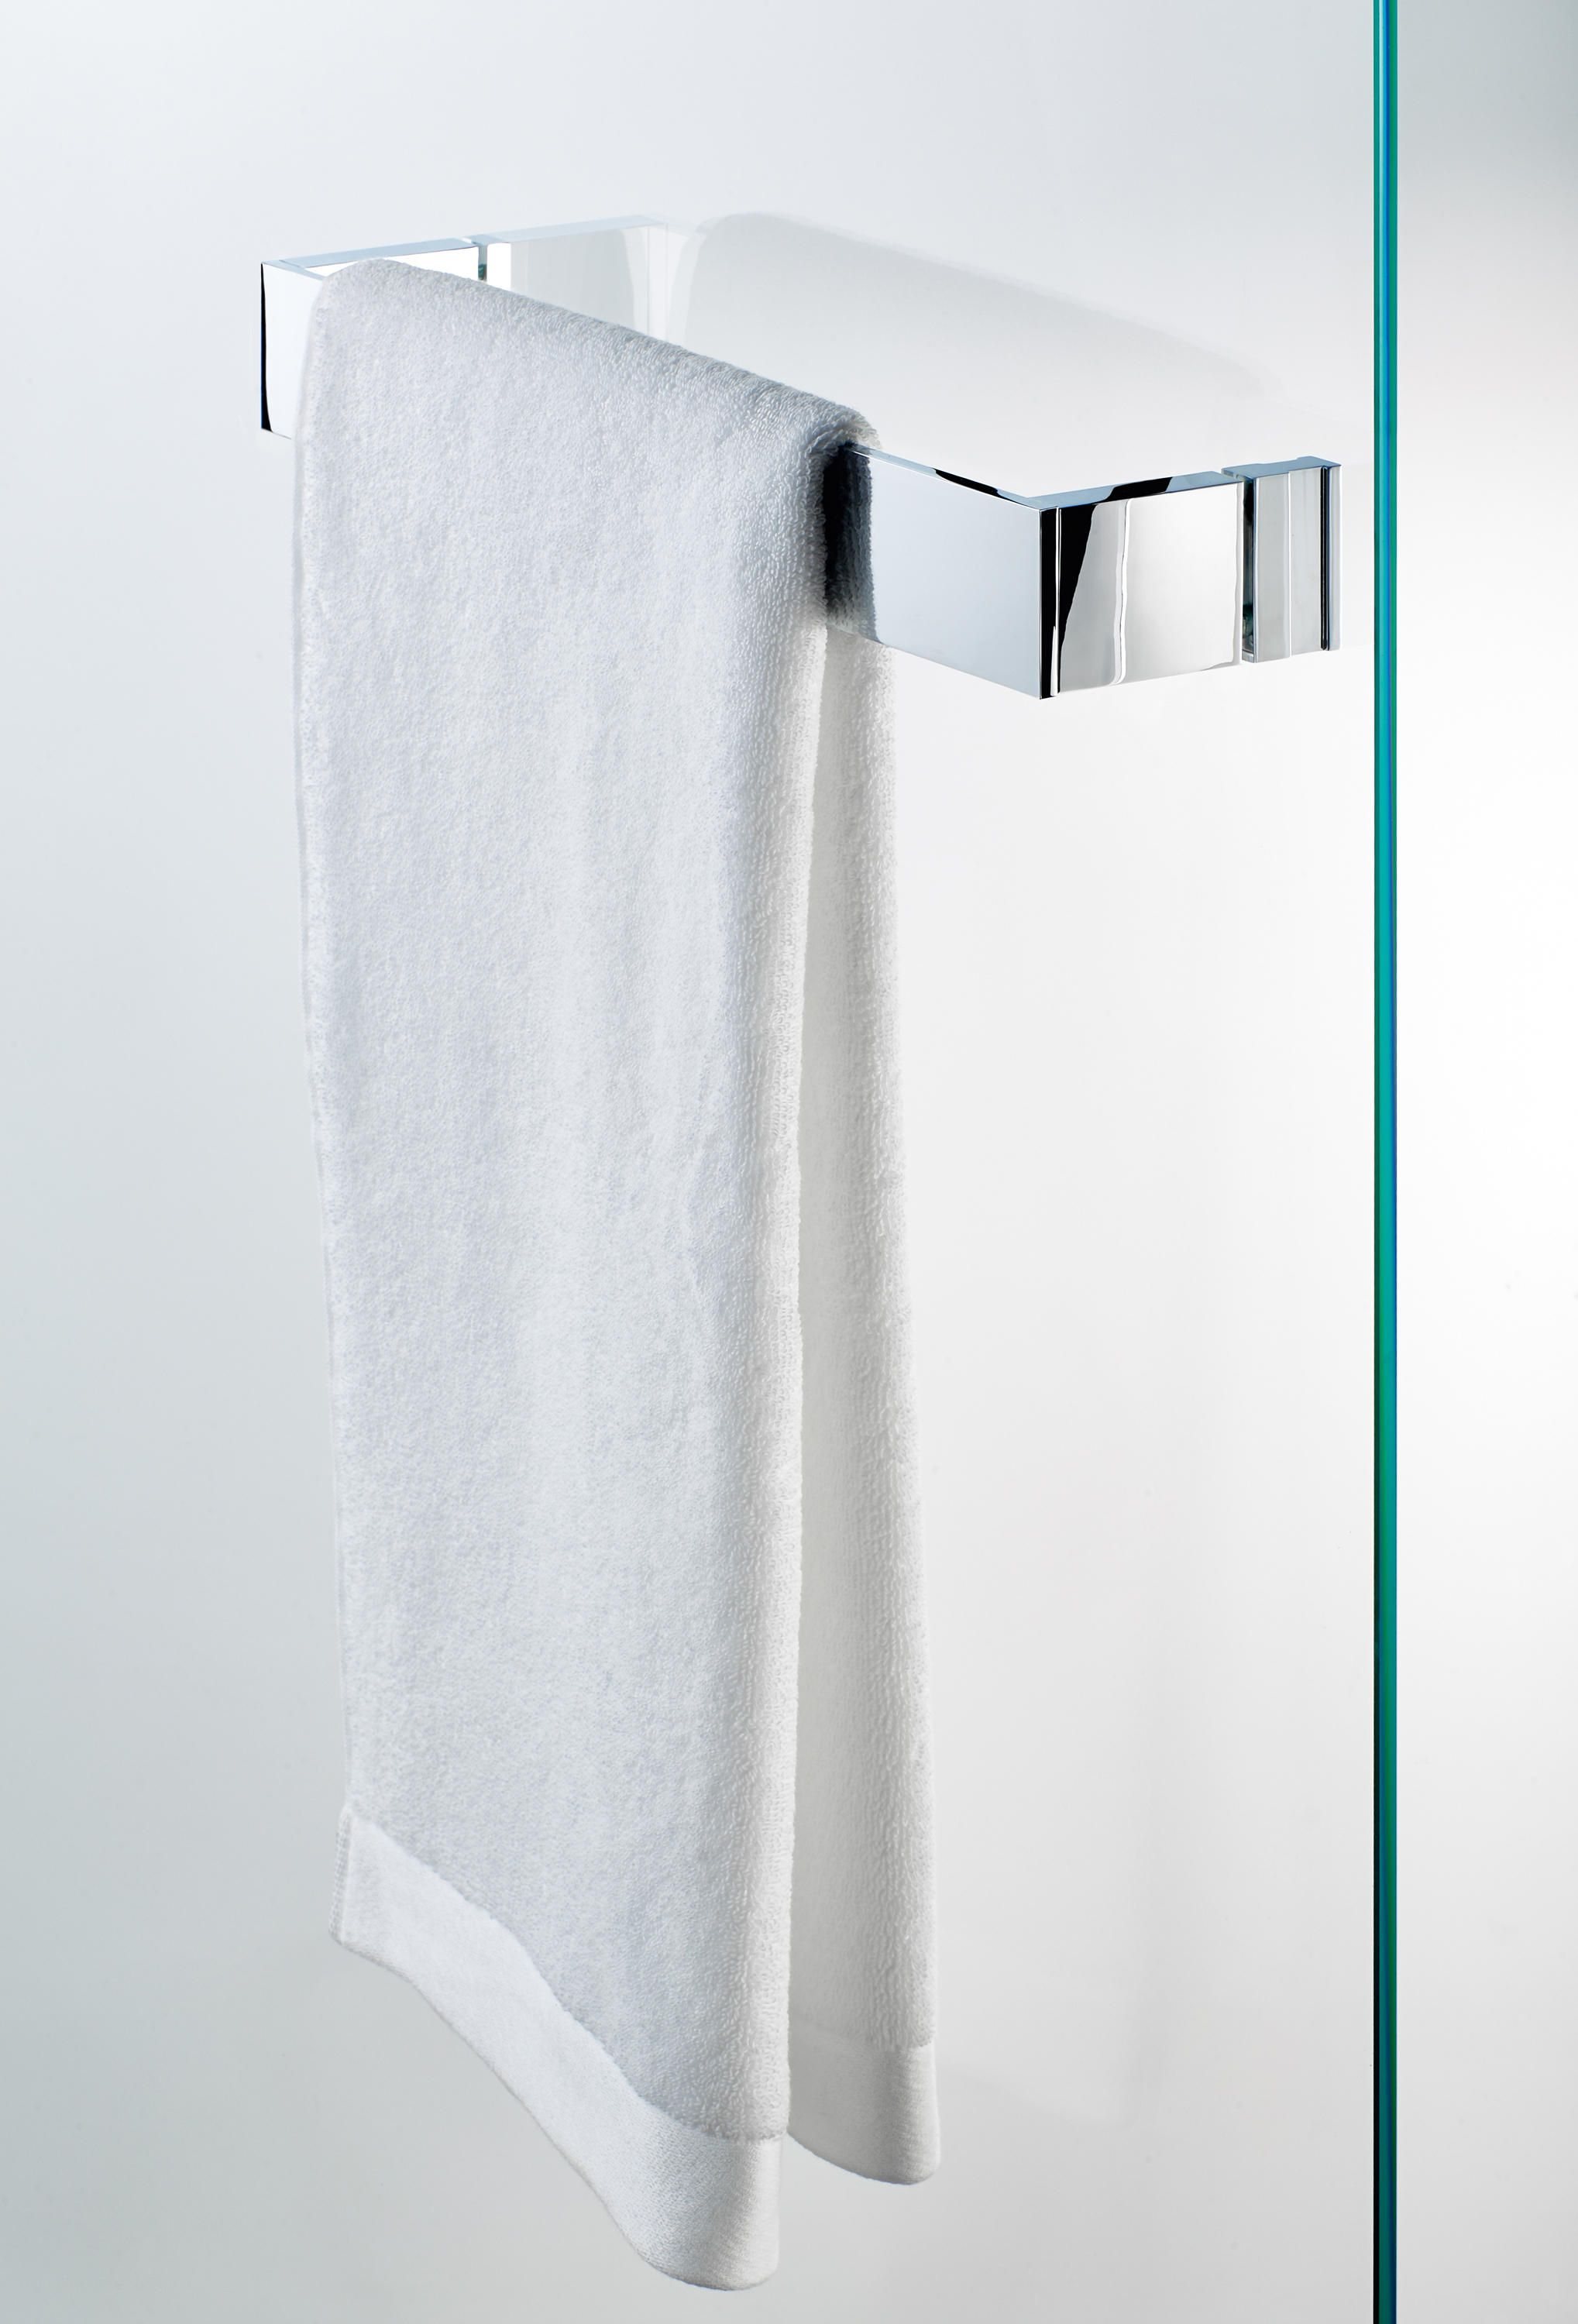 Decor Walther Bathroom Accessories.Bk Dtg By Maiken Walther For Decor Walther Architonic